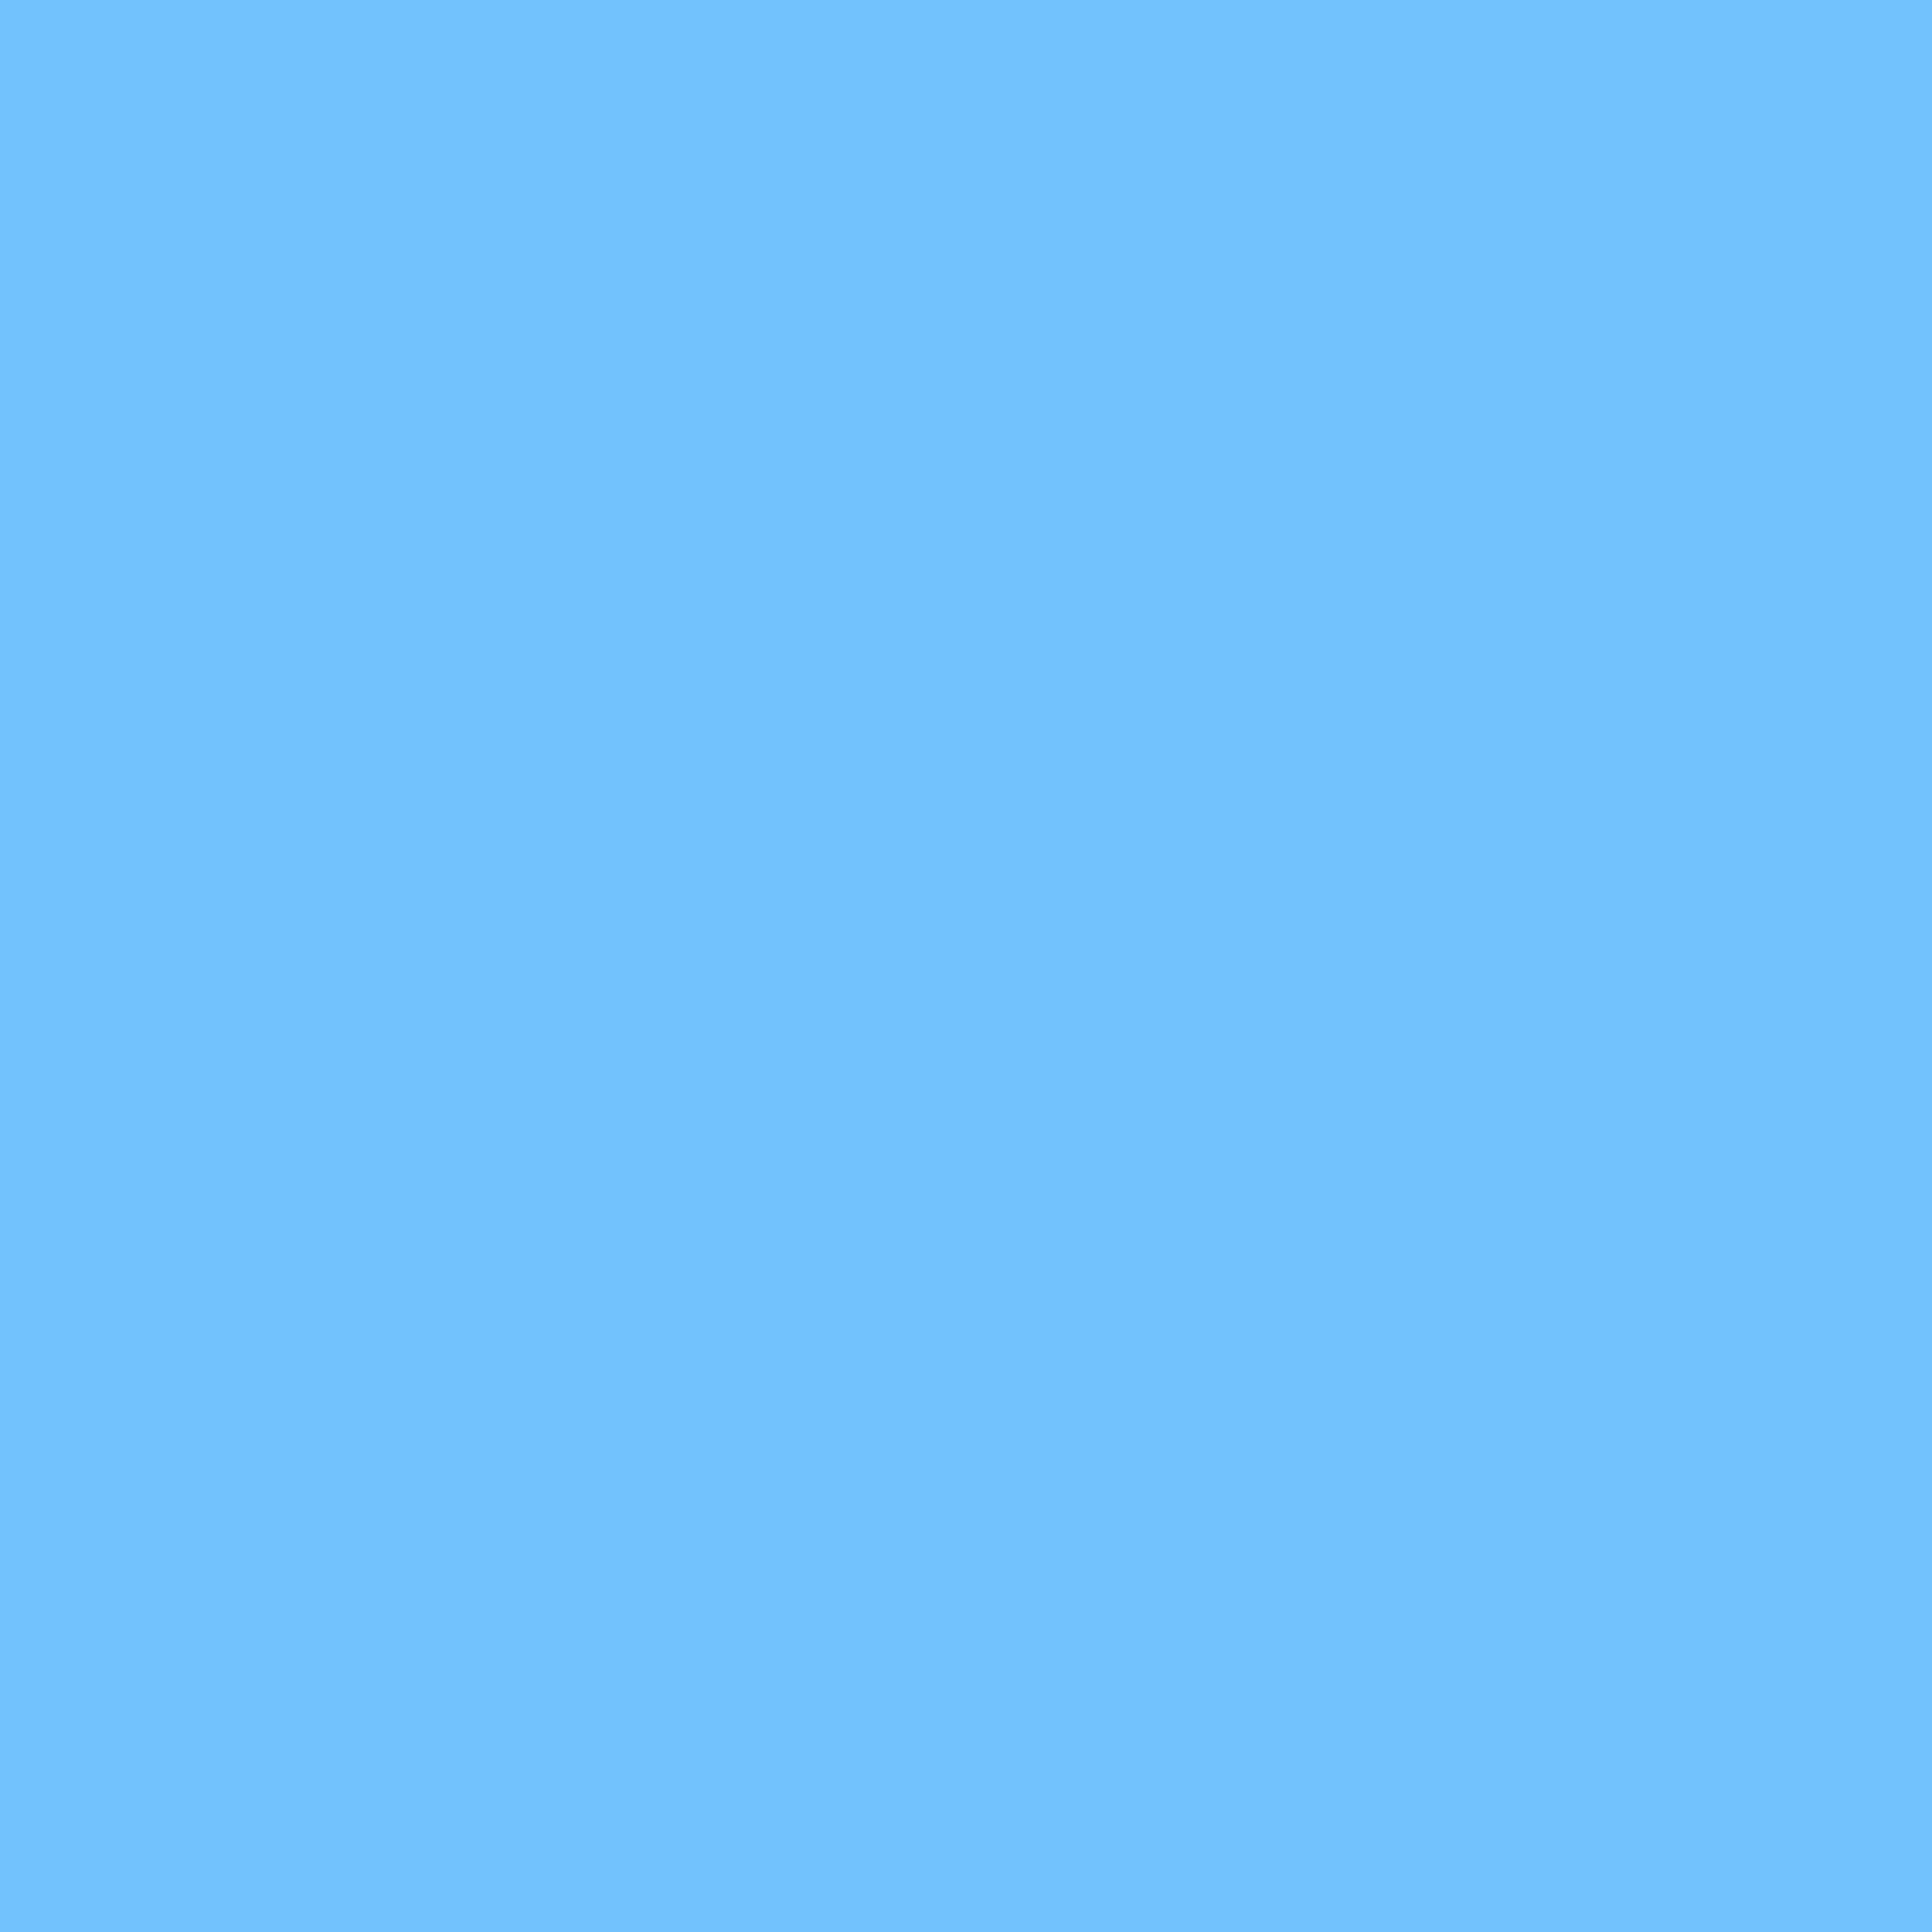 2732x2732 Maya Blue Solid Color Background